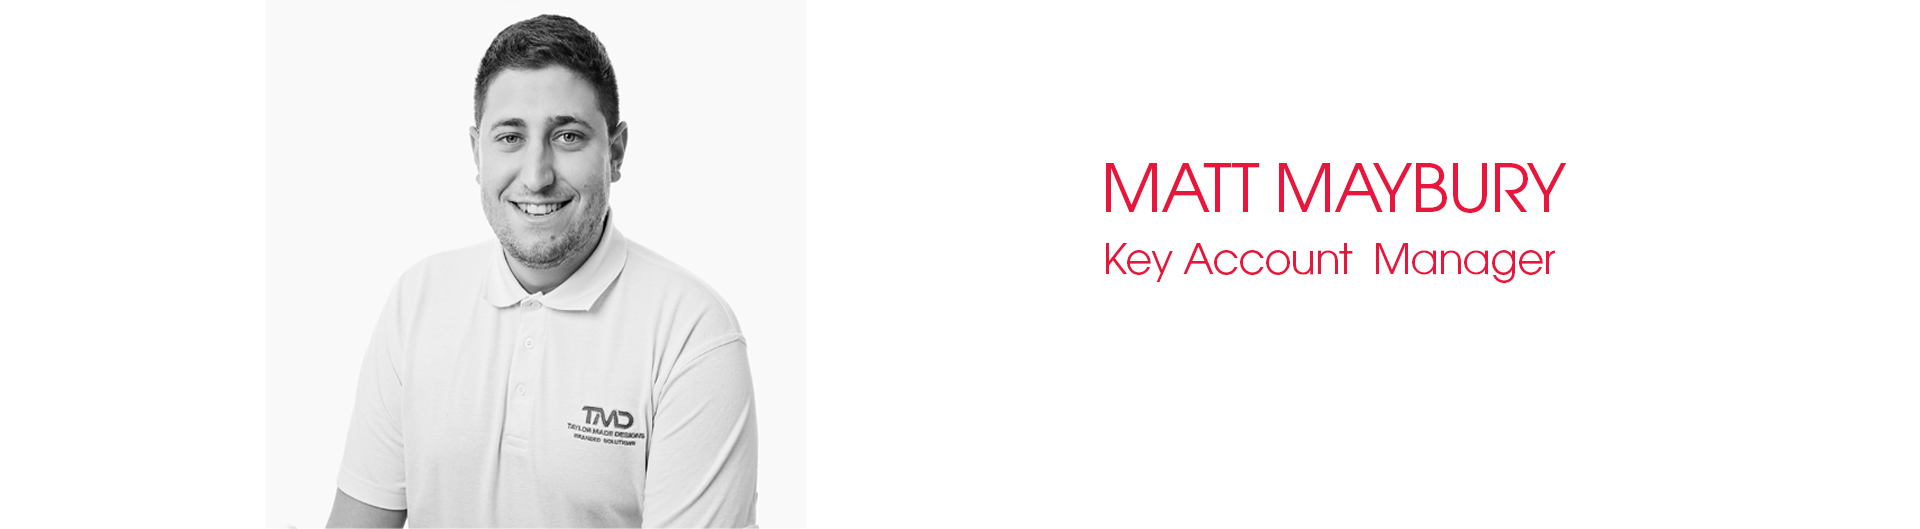 Matt Maybury Key Account Manager